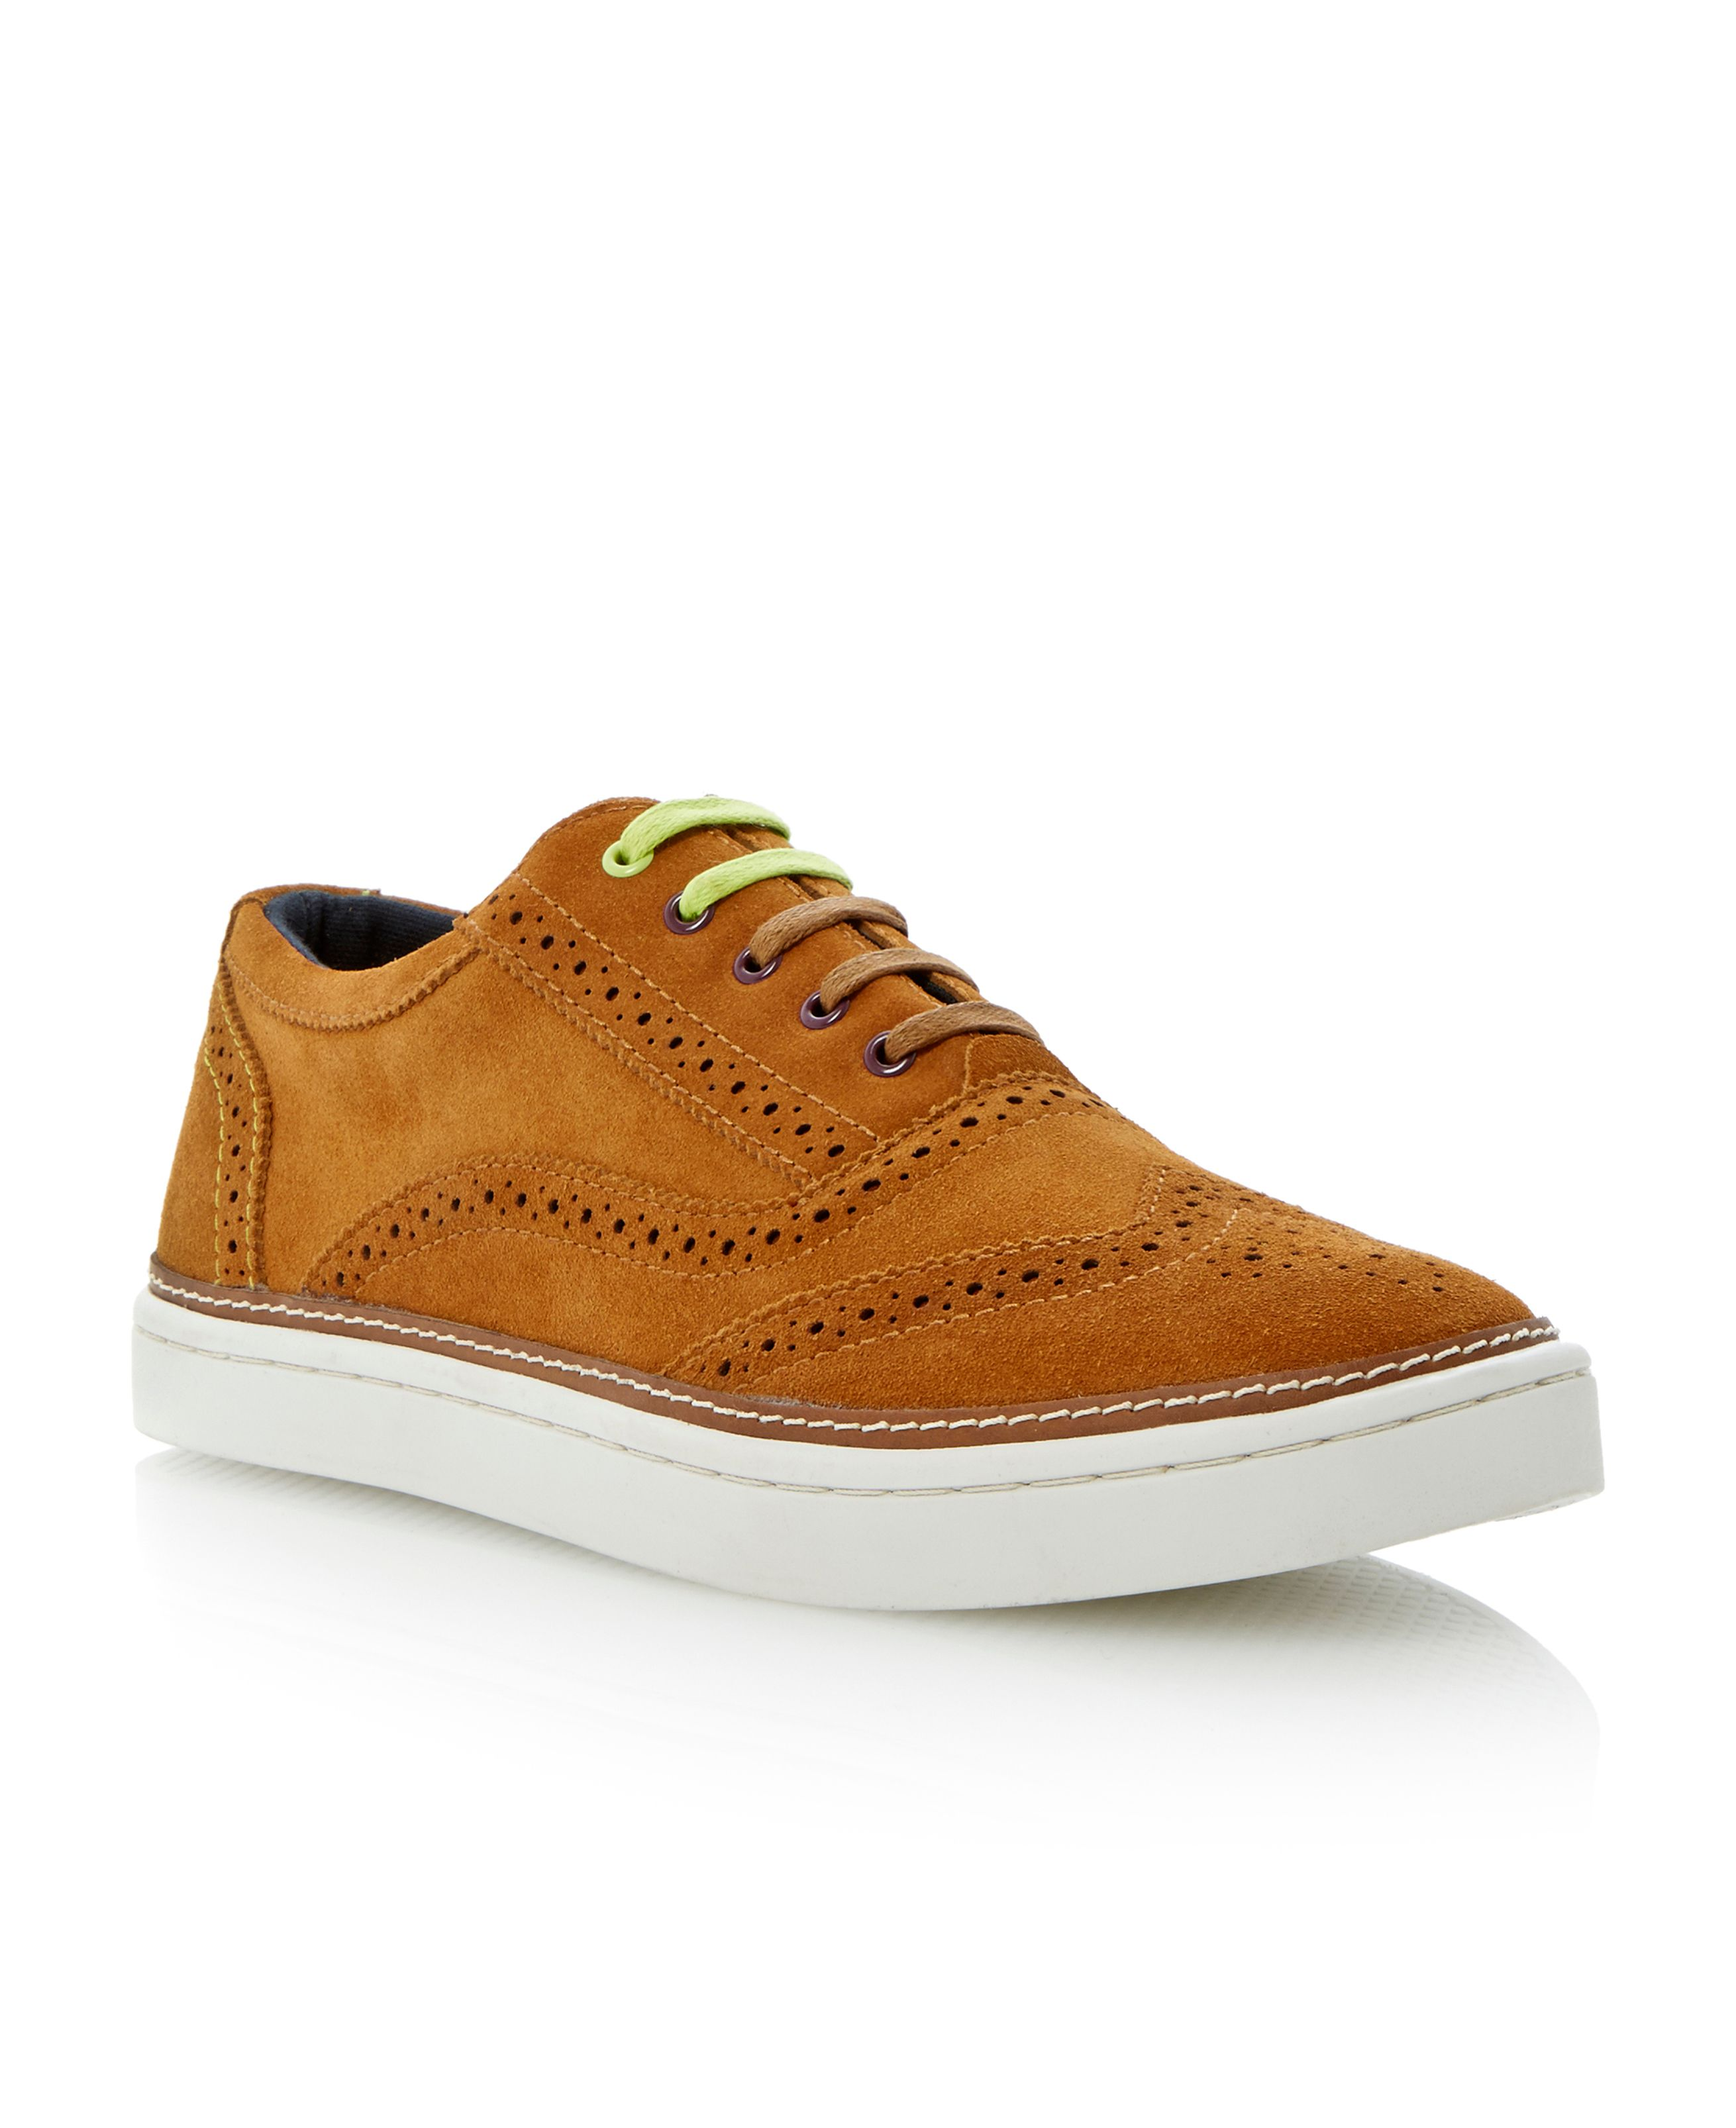 Hapra 2 lace up brogue cup sole trainers